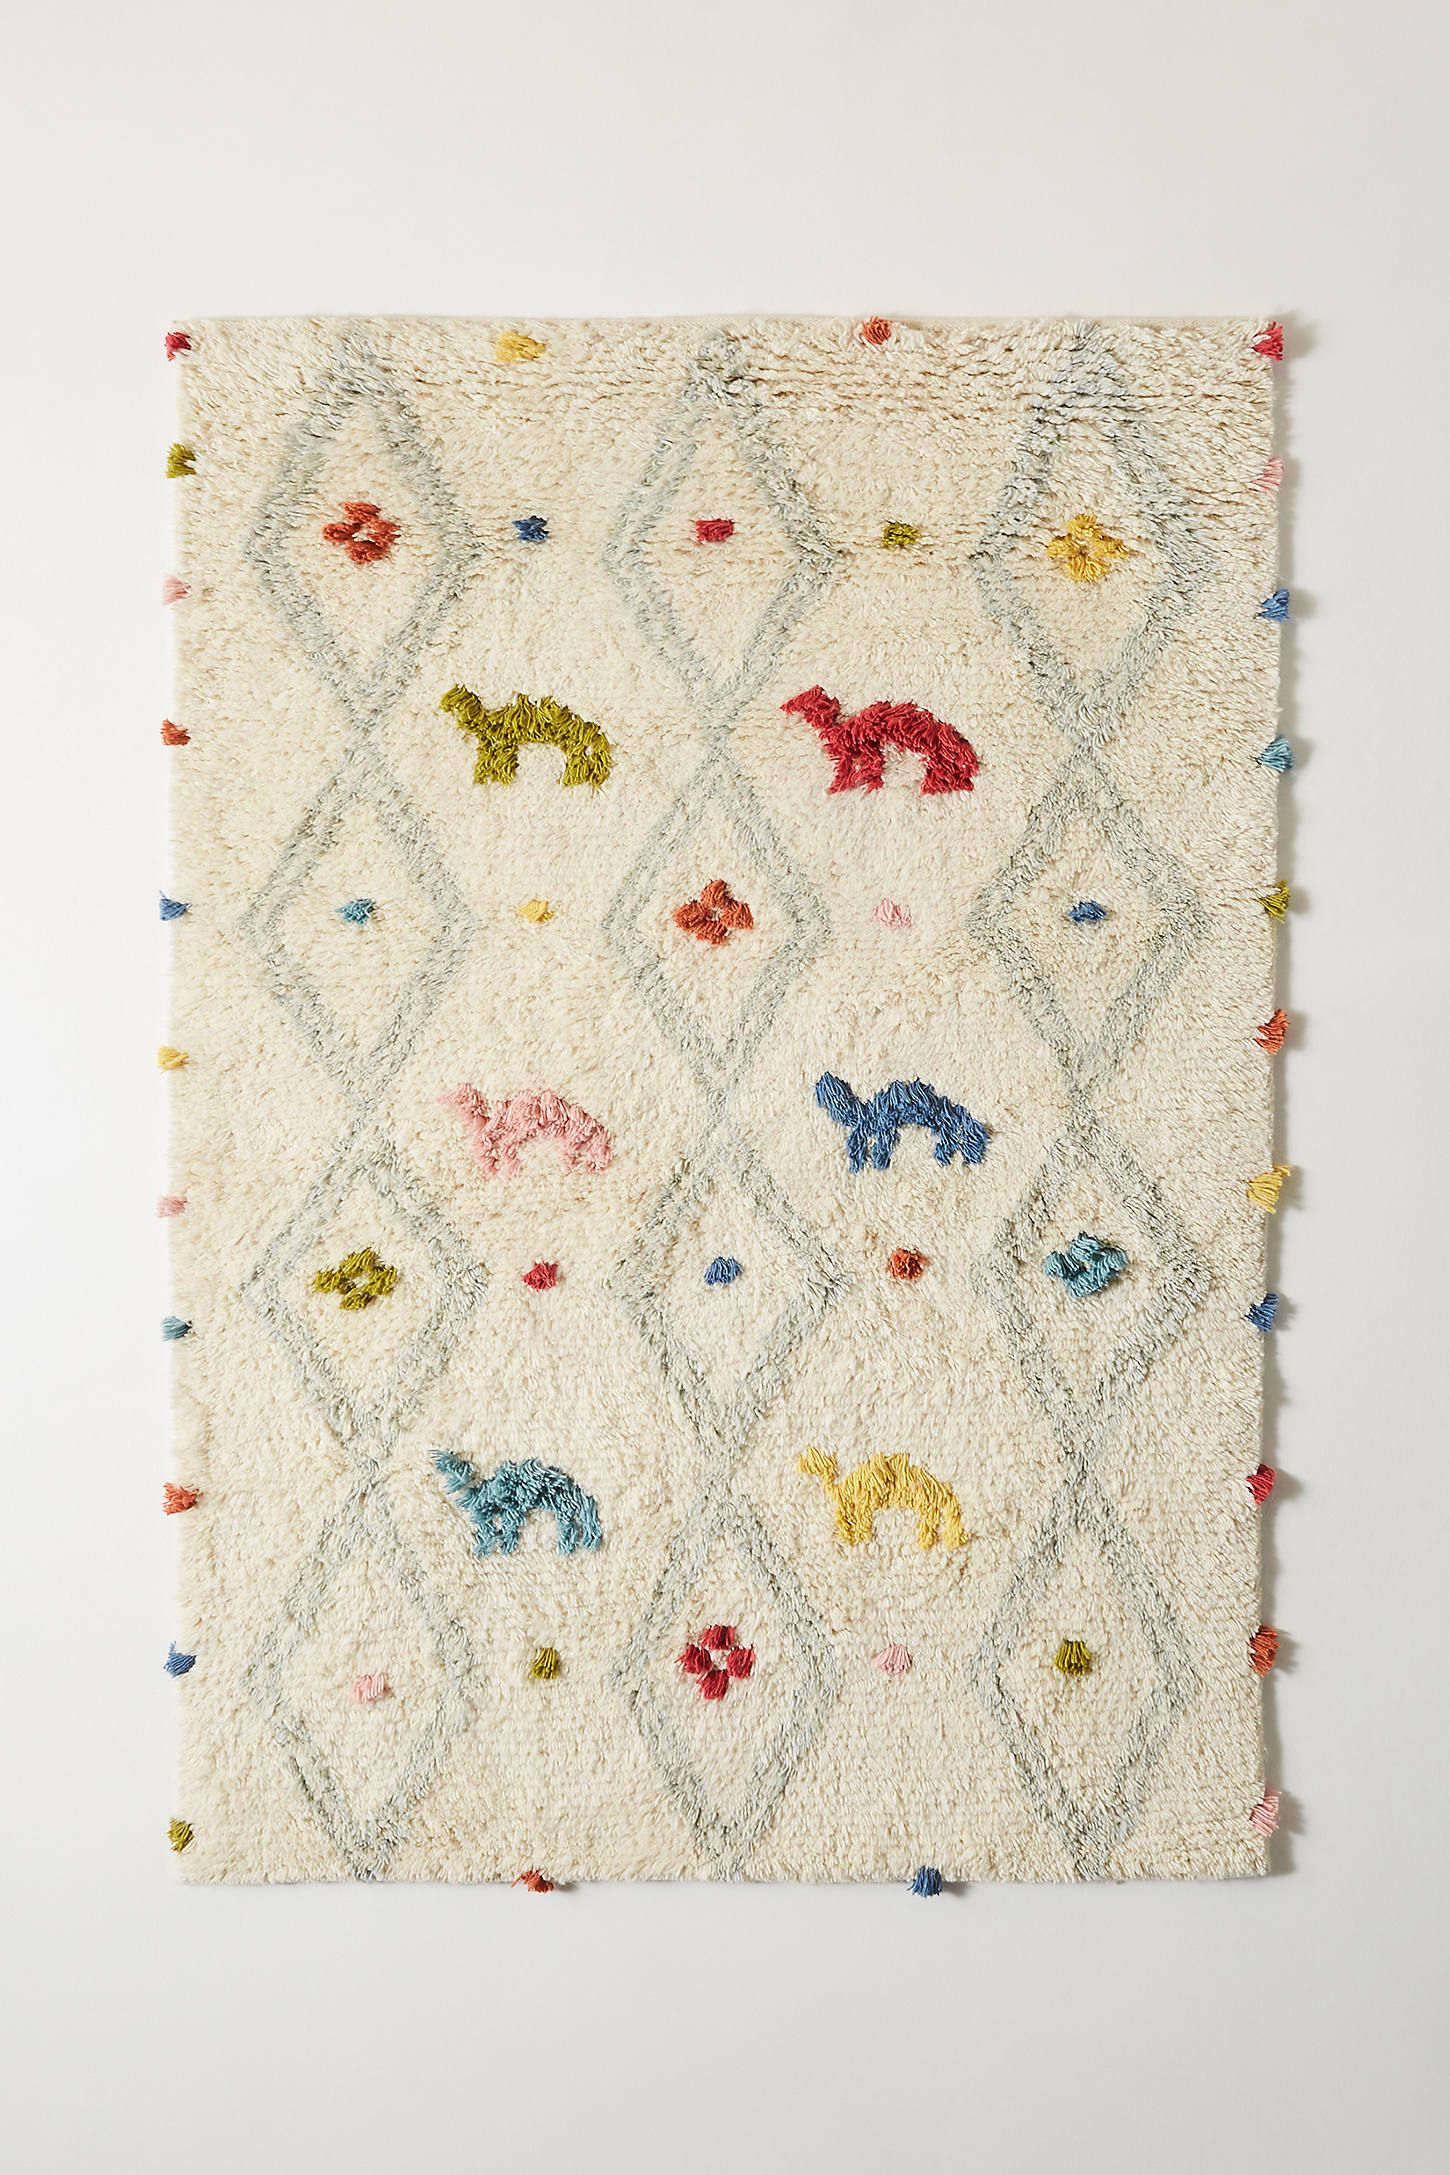 Handwoven Beni Kids Rug by Anthropologie in Assorted,